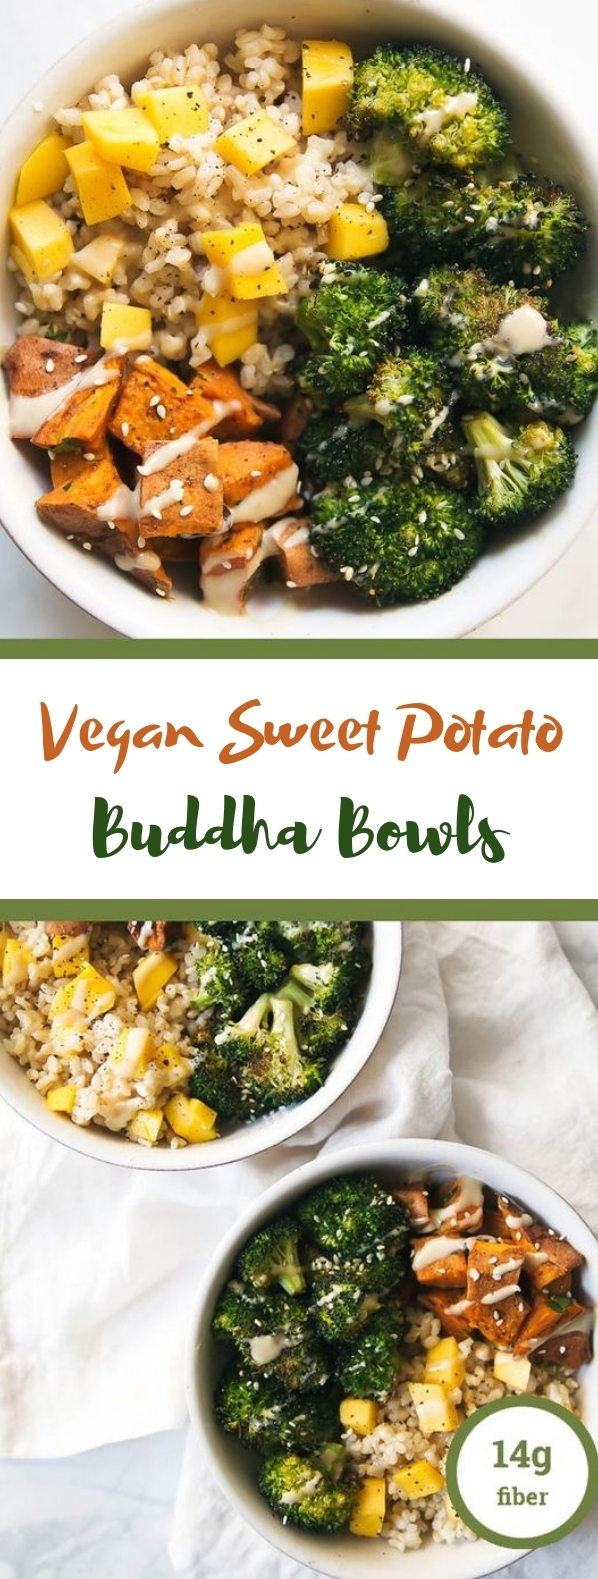 Vegan Sweet Potato Buddha Bowls with Almond Butter Dressing #vegetarian #glutenfree